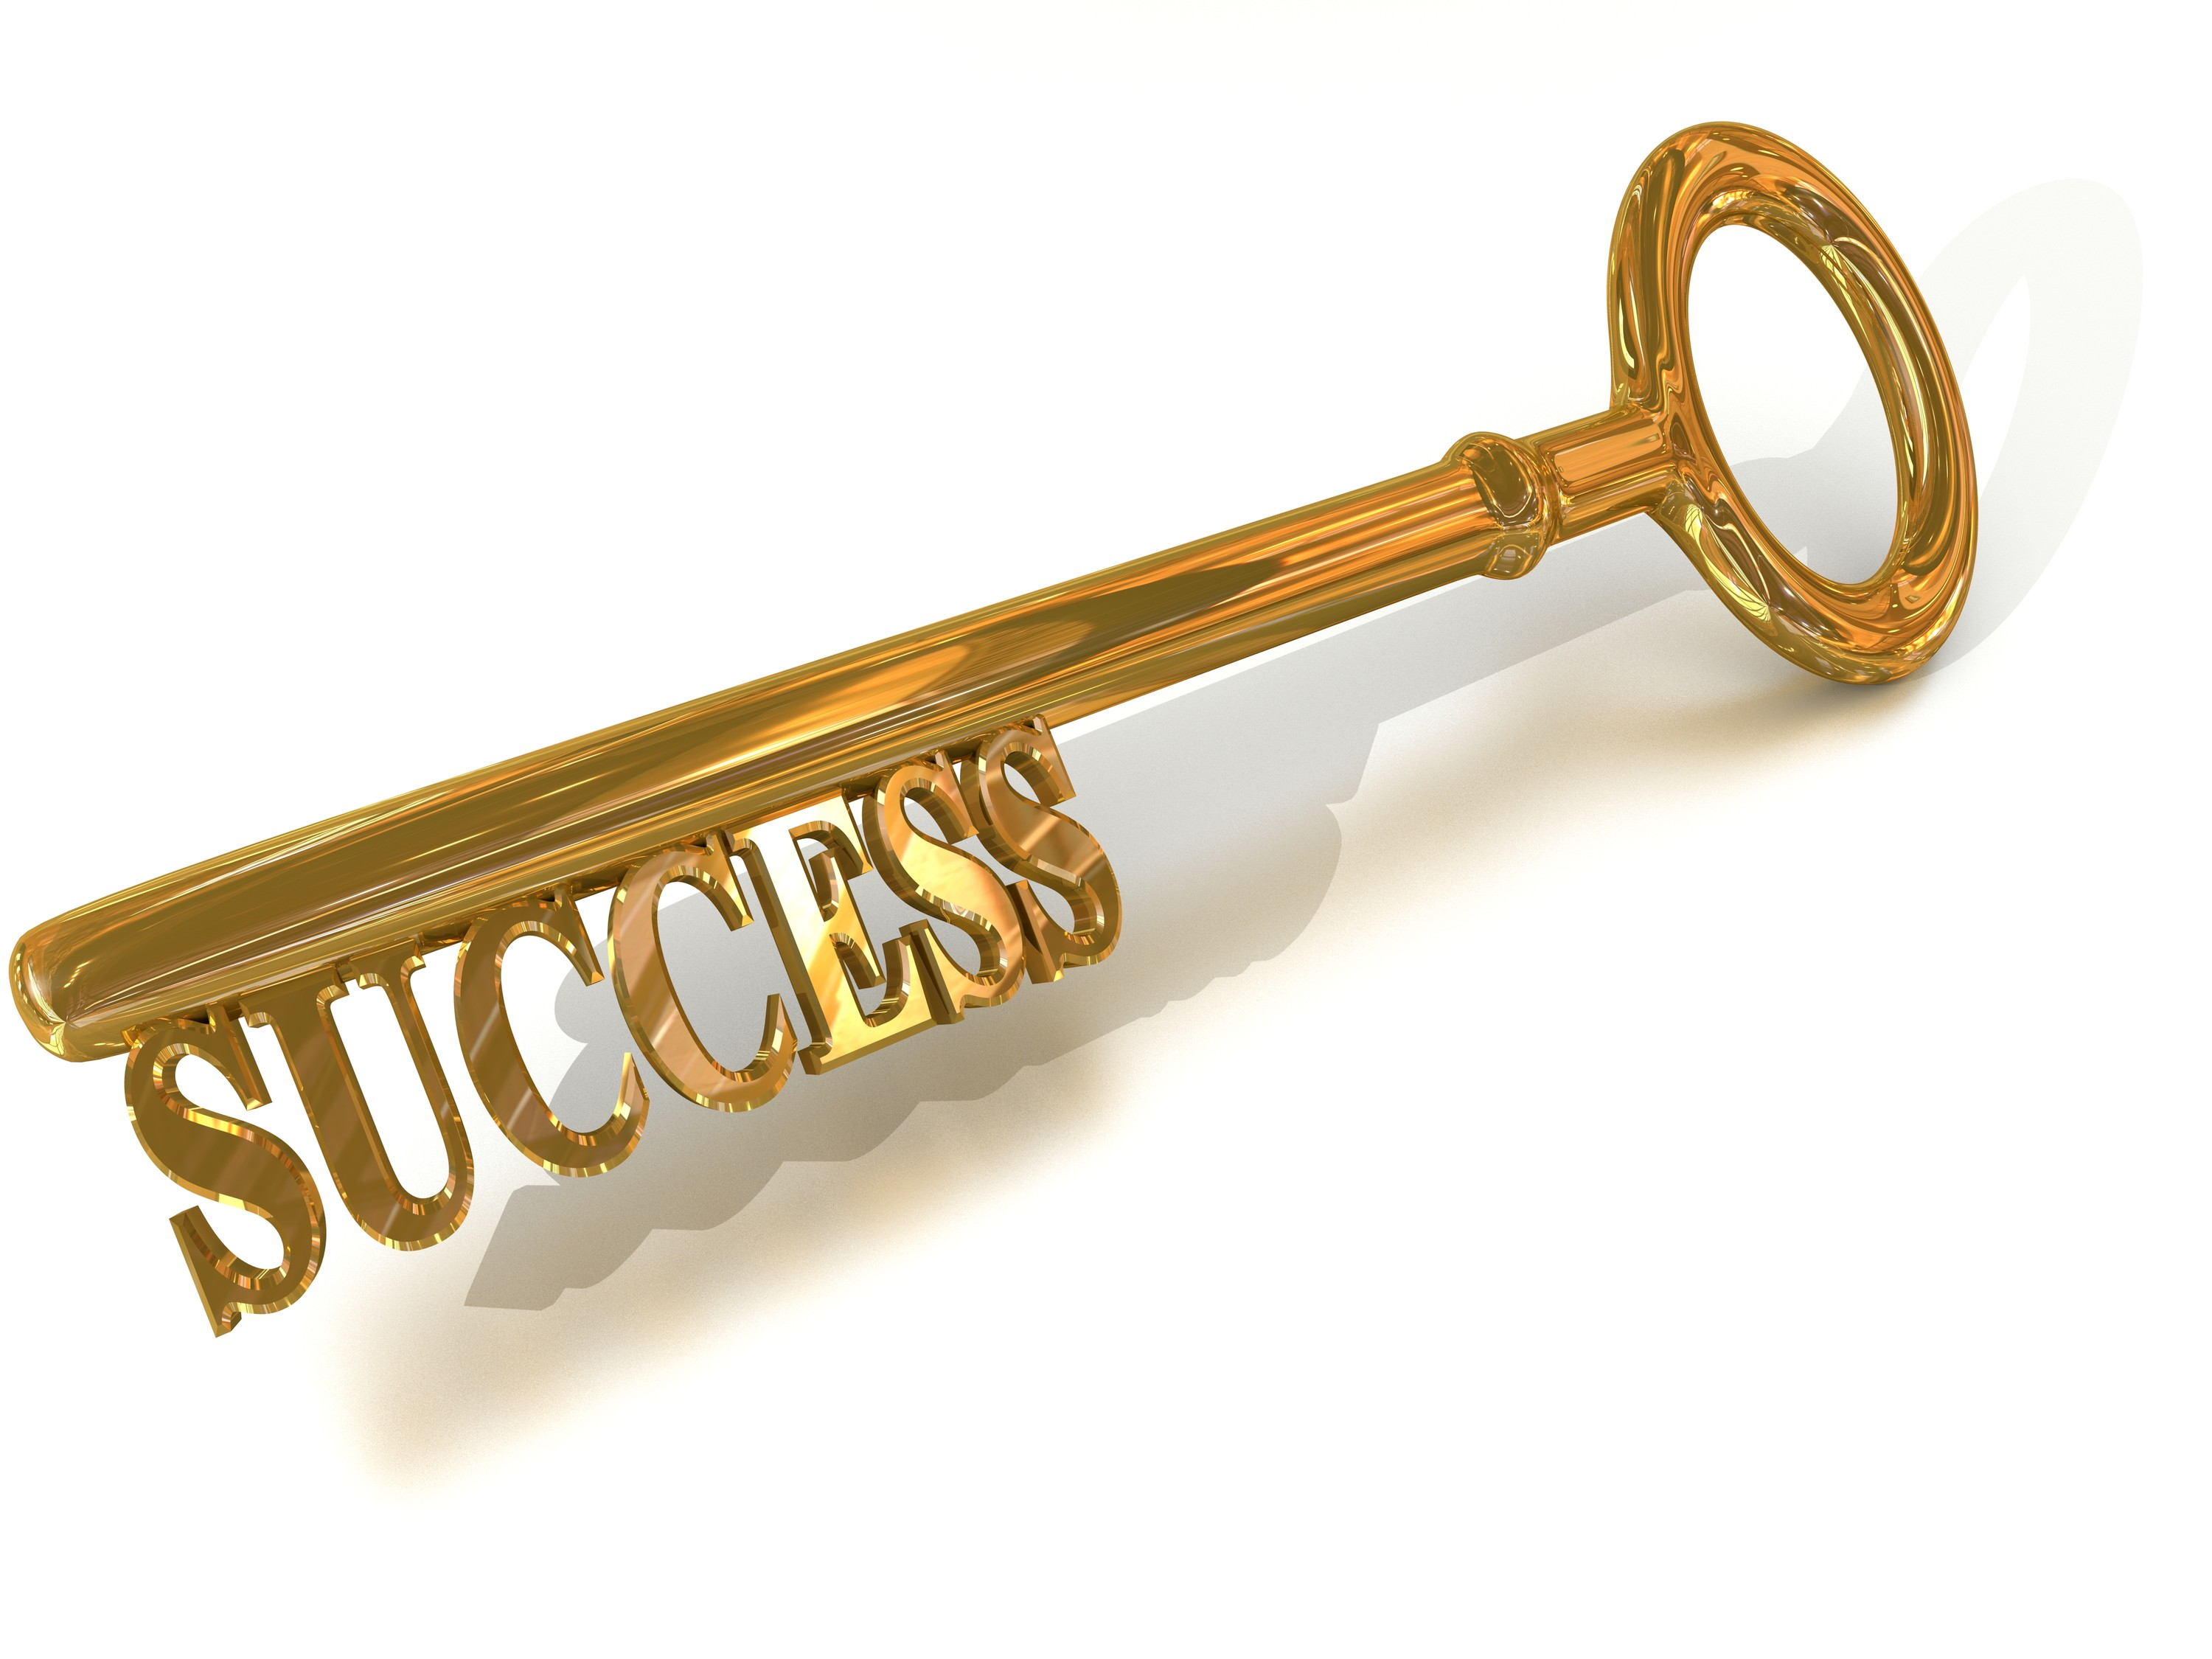 KeyToSuccess.jpg